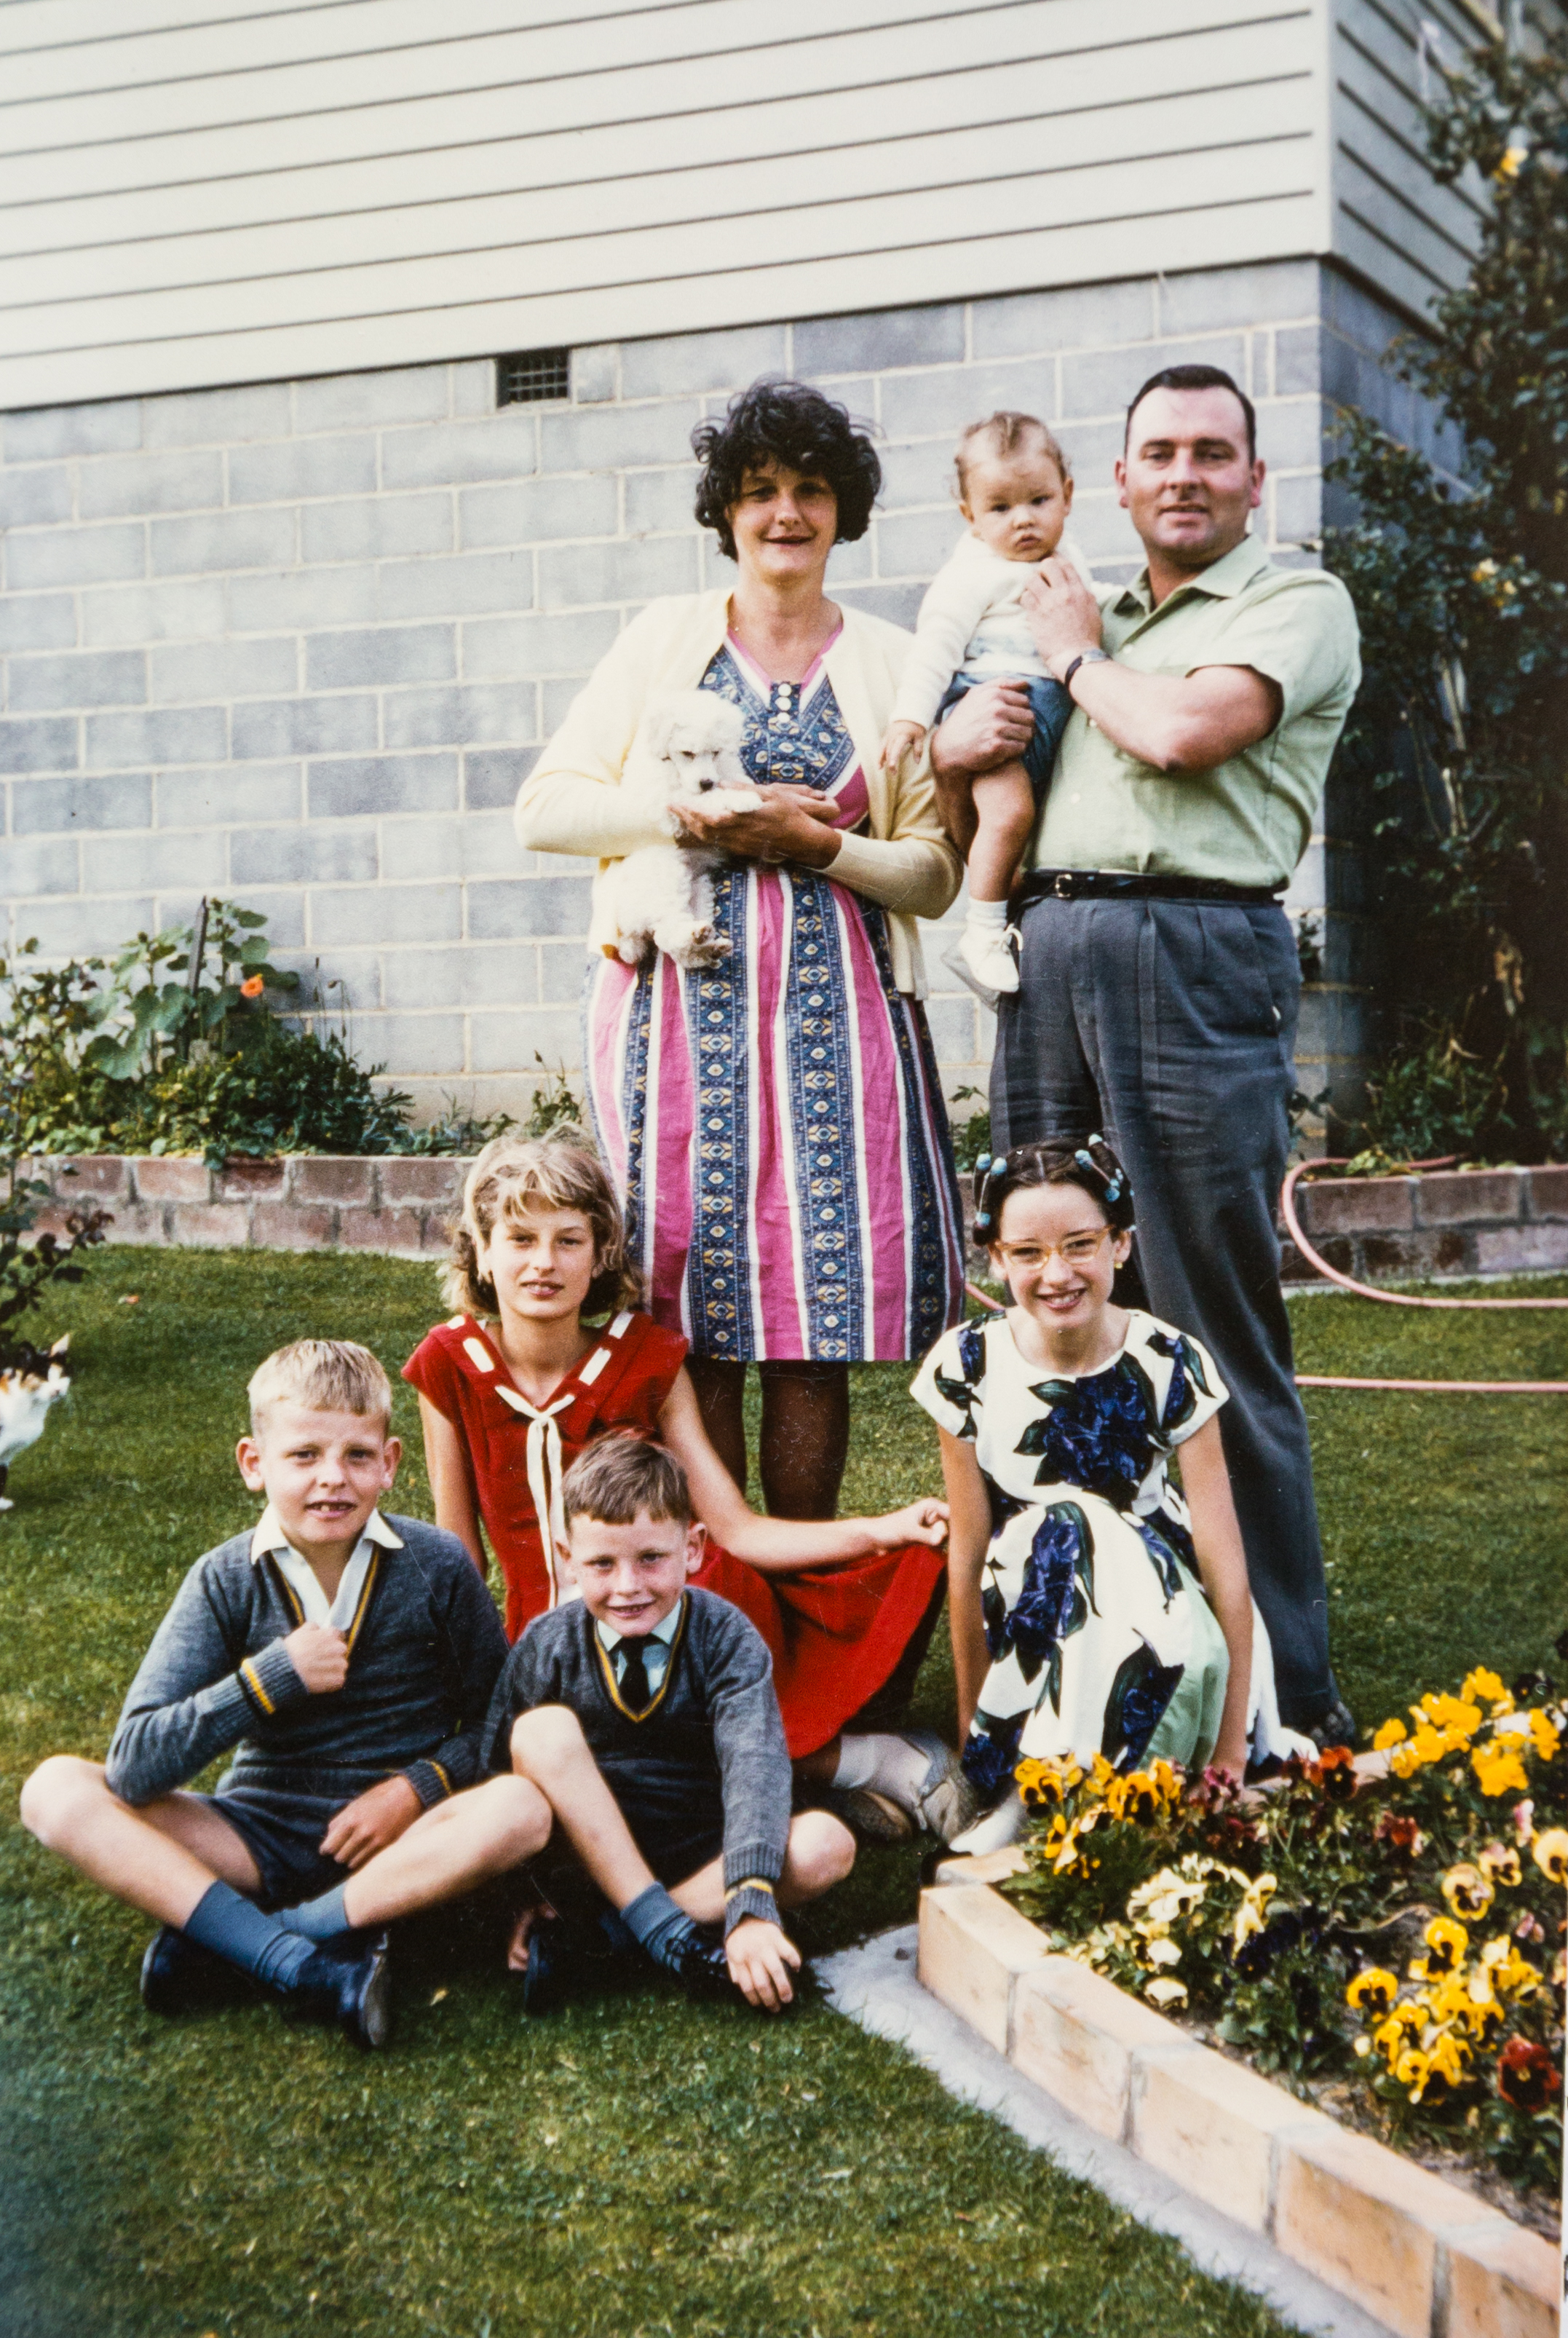 Ted and Tessie on their front lawn with their children Ann, Teddy, Phillip, Pam, and Peter